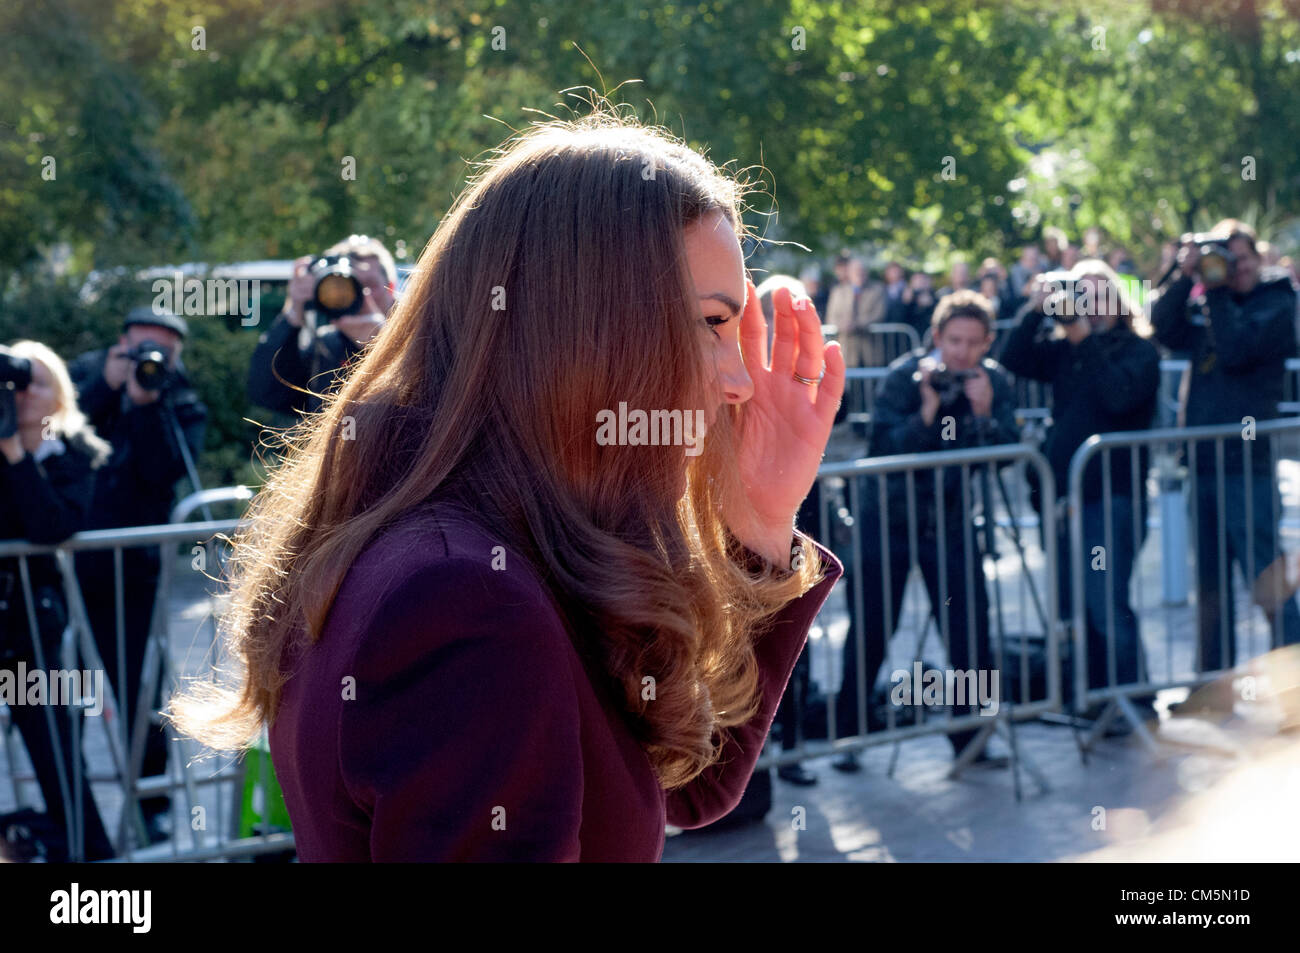 Newcastle, UK. 10th October 2012. The Duchess of Cambridge is seen visting Elswick Park. She was informed that it Stock Photo